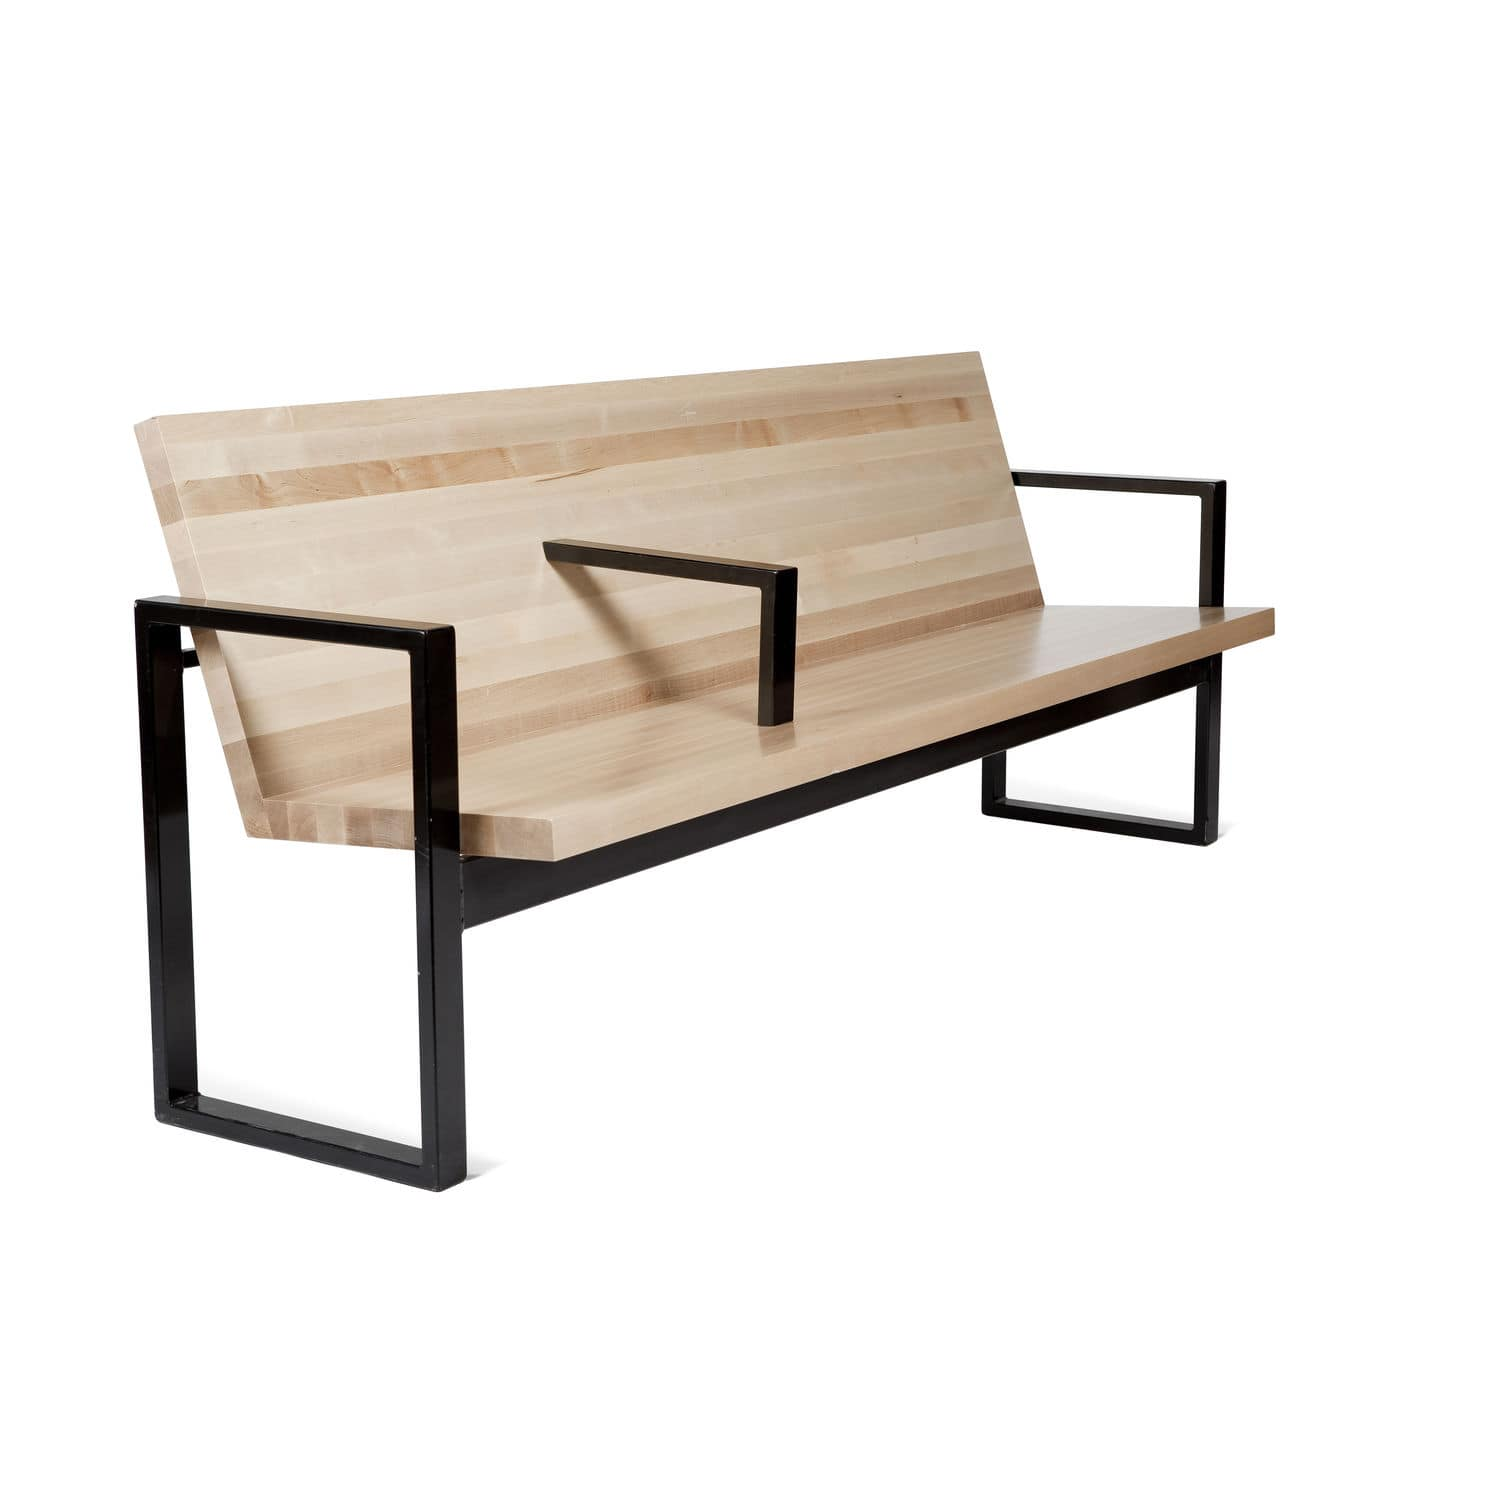 Garden Bench Contemporary Wooden Metal So 370 By Efs